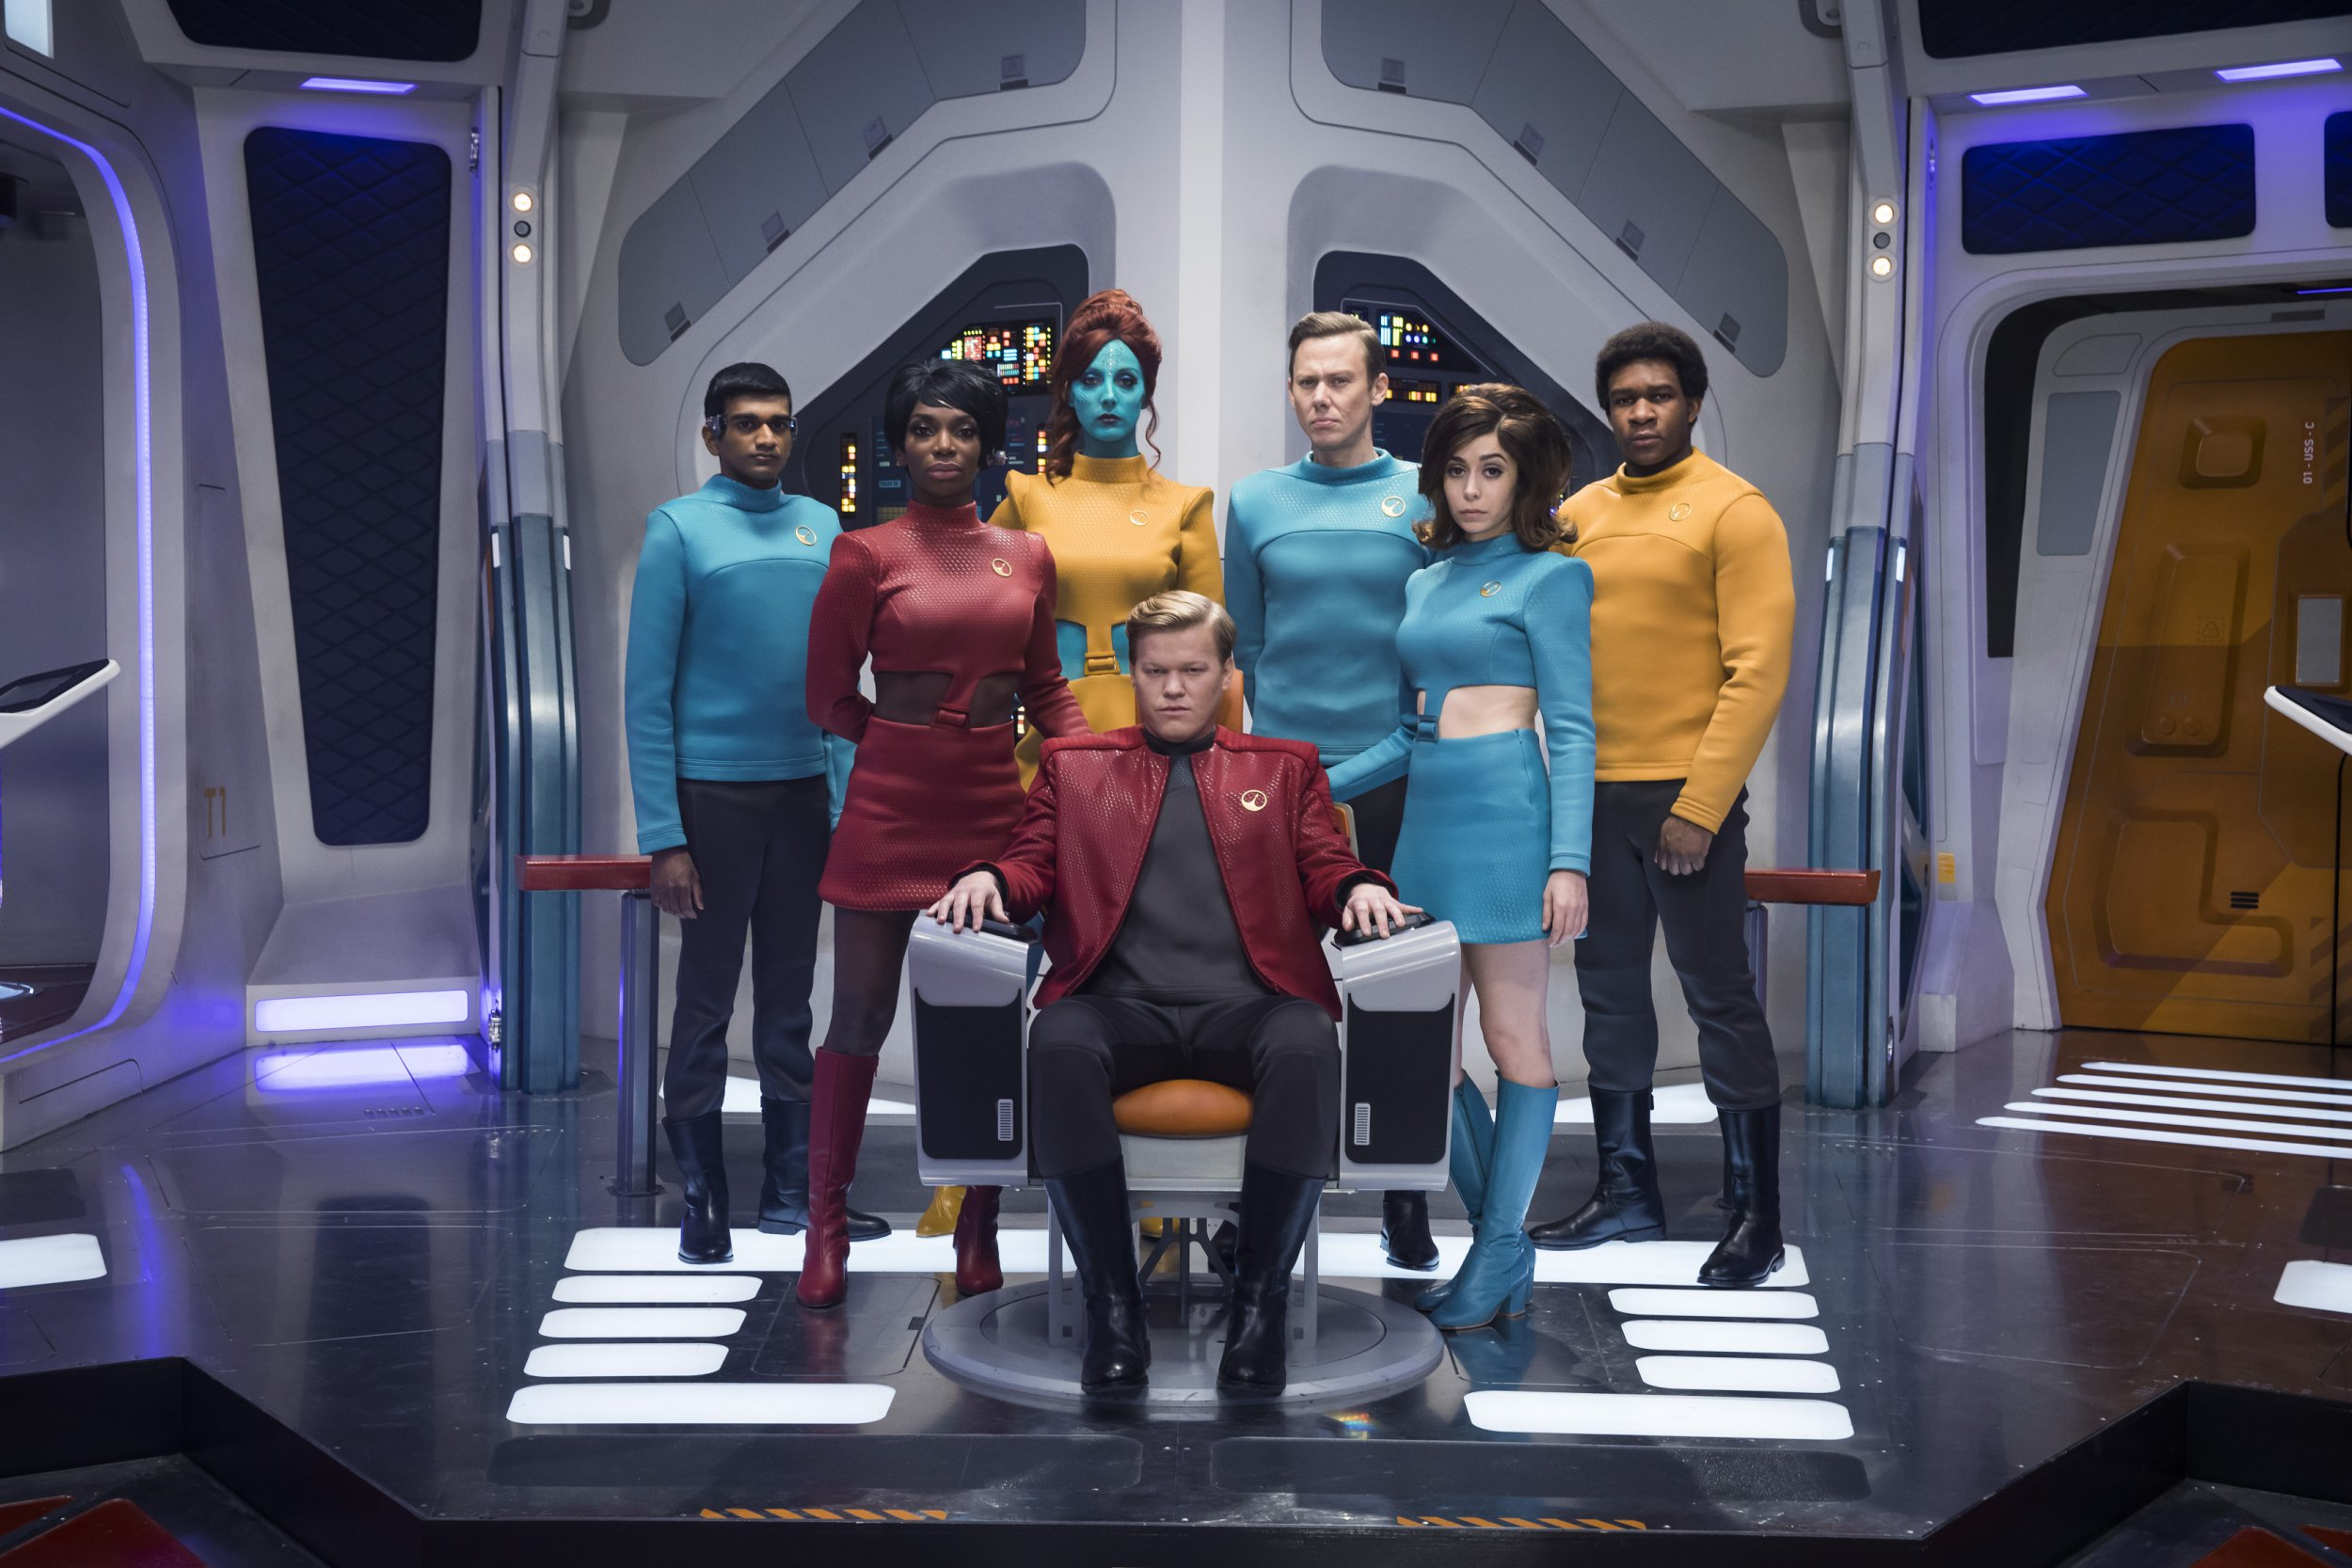 Black Mirror was nearly cancelled by Channel 4 before Netflix saved the day